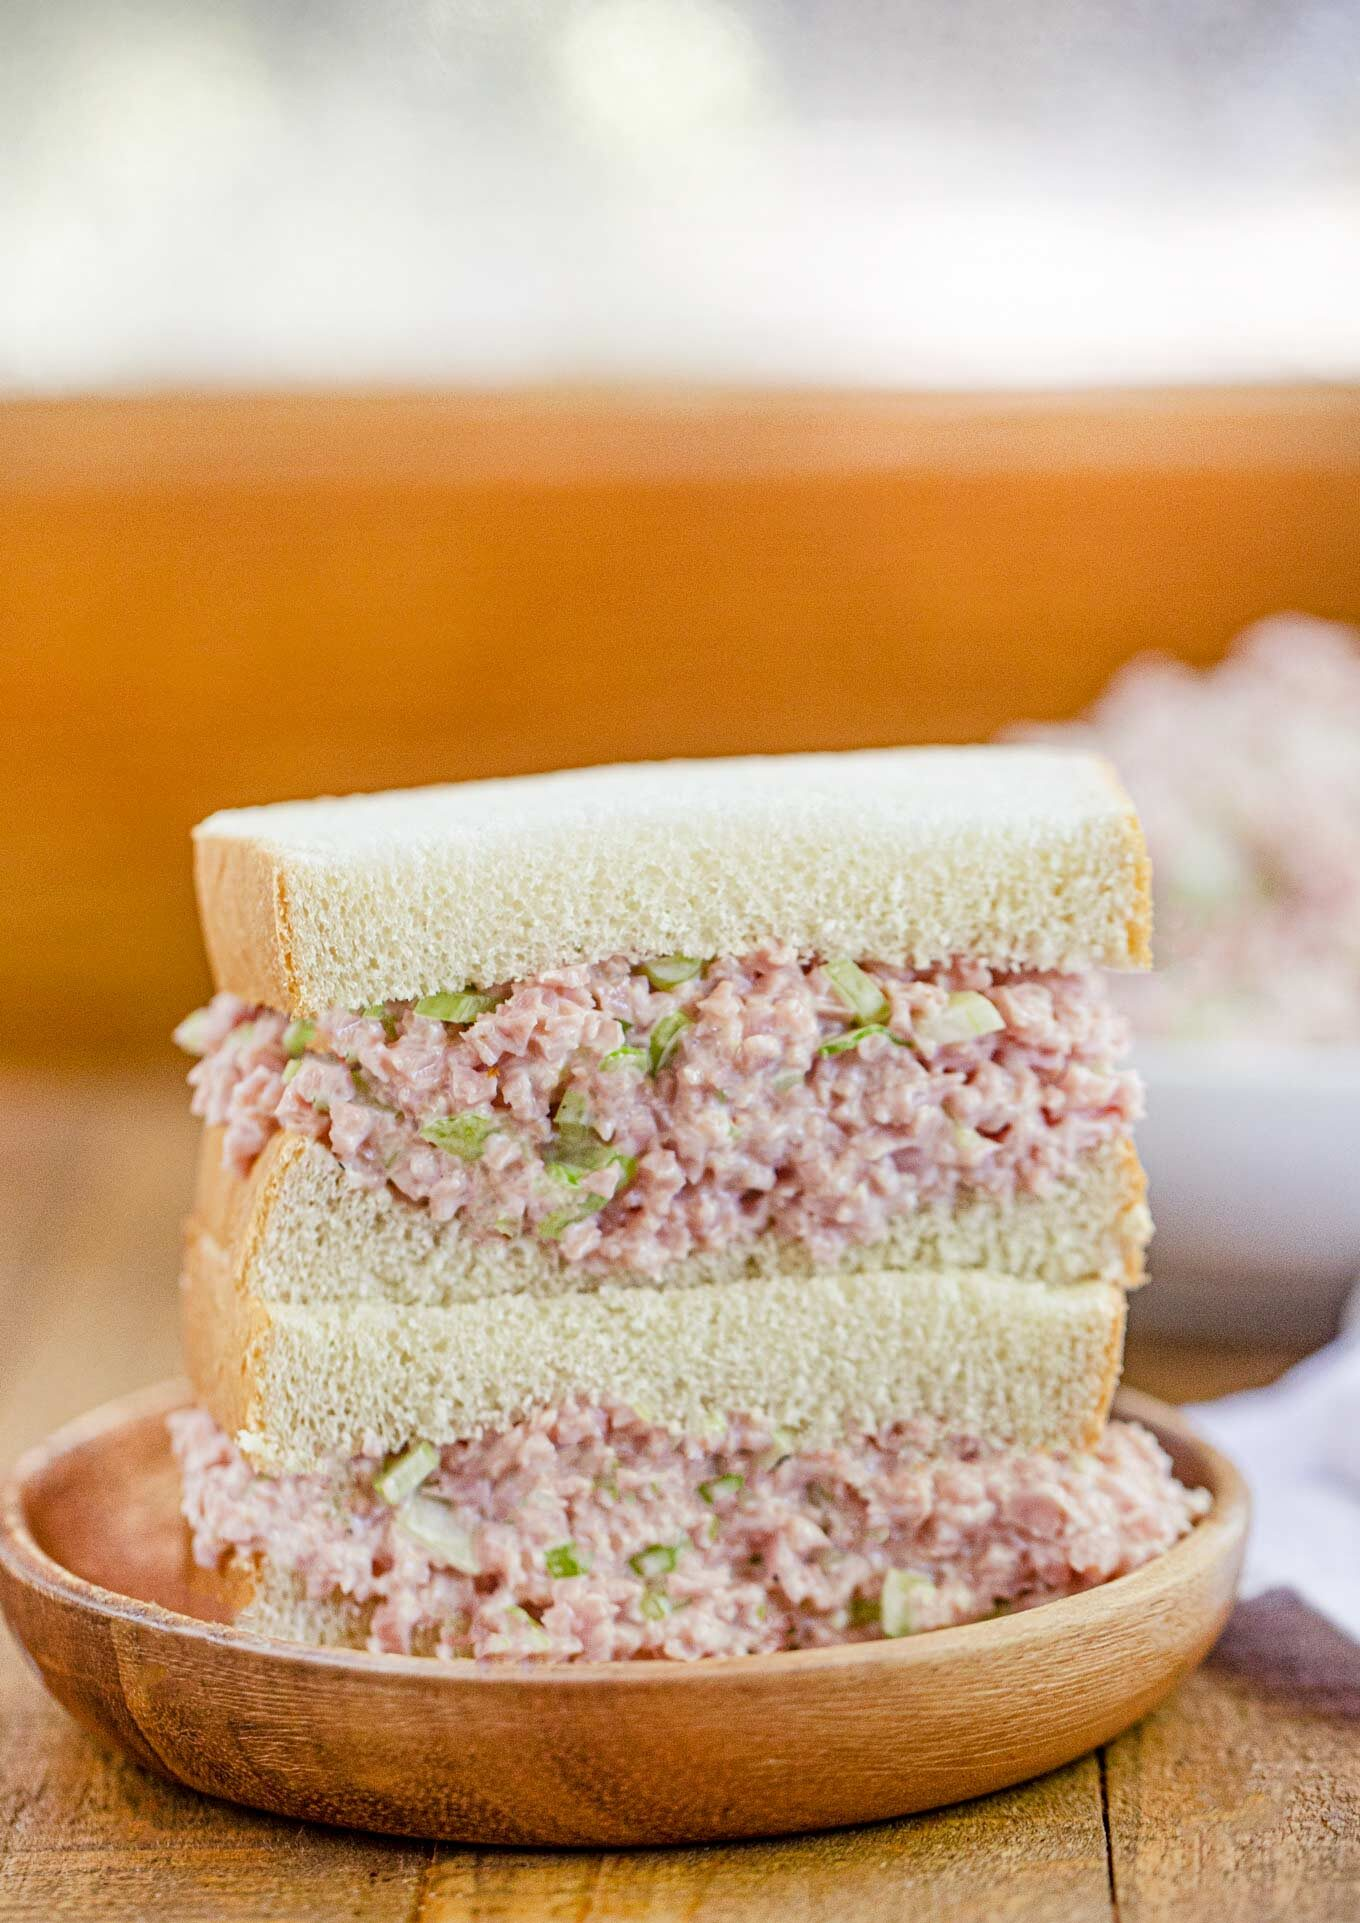 Ham Salad Sandwich on plate